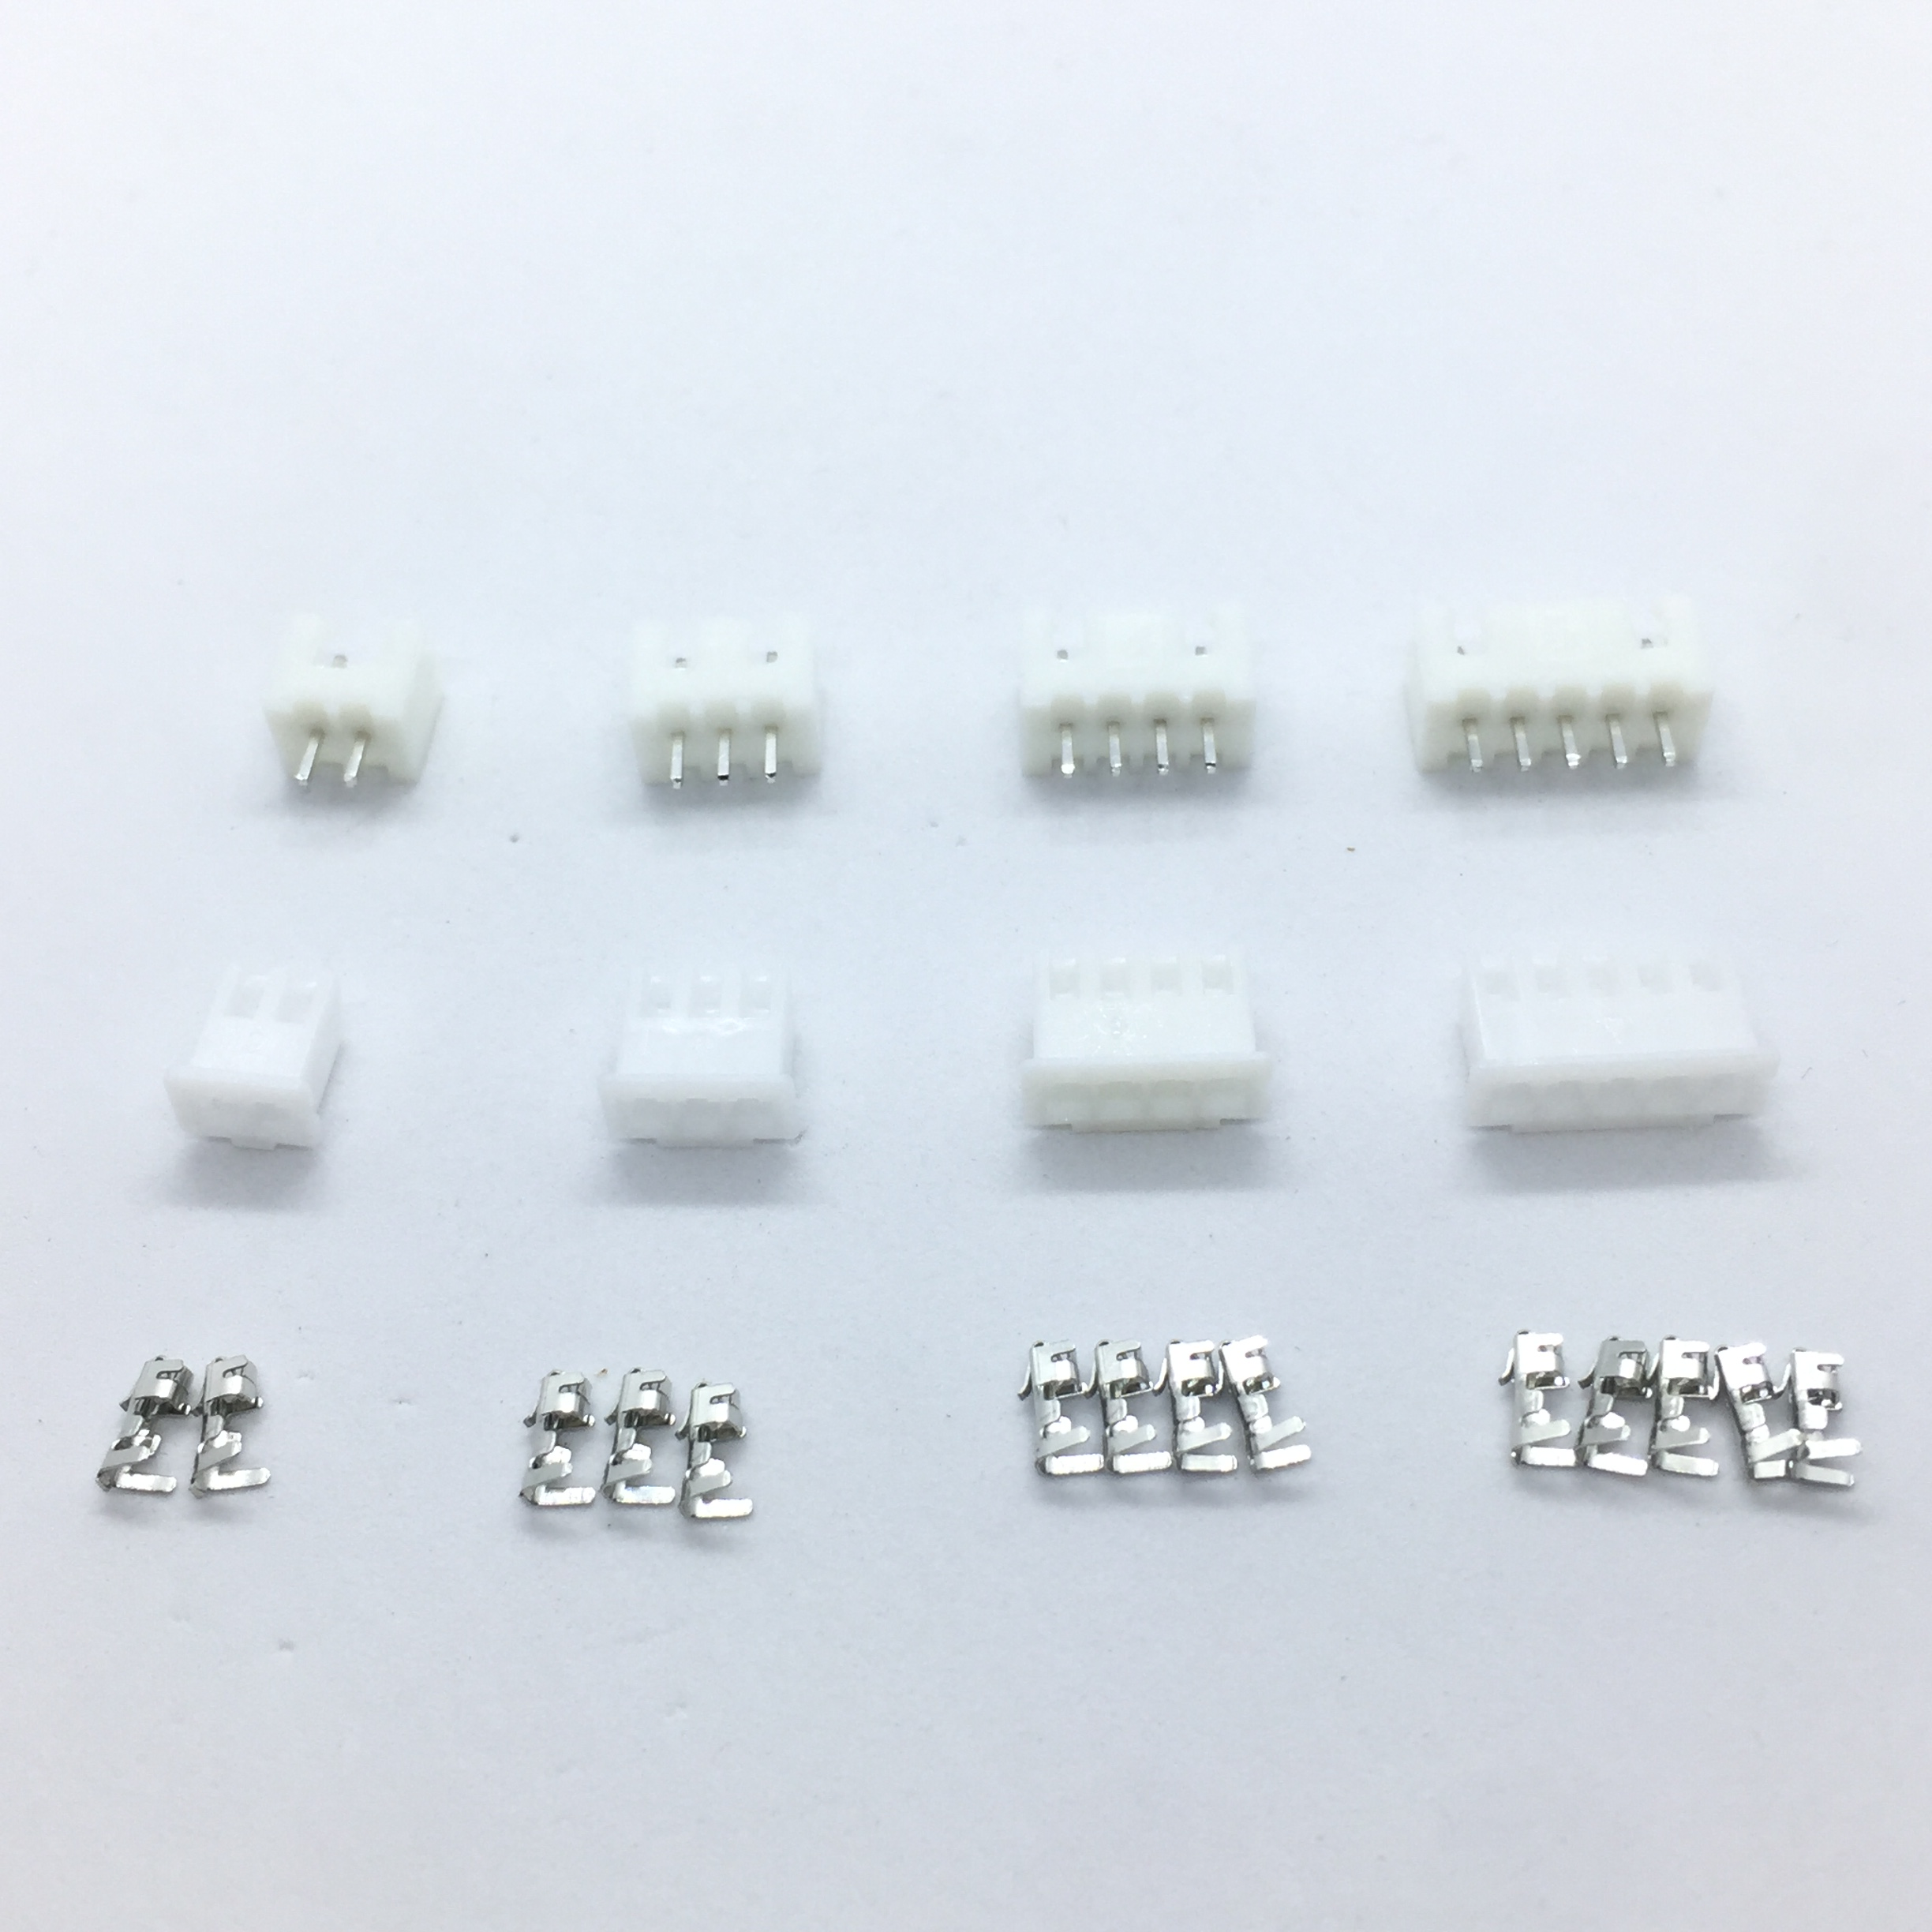 230pcs XH2.54 2p 3p 4p 5 pin 2.54mm Pitch Terminal Kit / Housing / Pin Header Connector Wire Connectors Adaptor XH Kits JST TJC3 1000pcs dupont jumper wire cable housing female pin contor terminal 2 54mm new